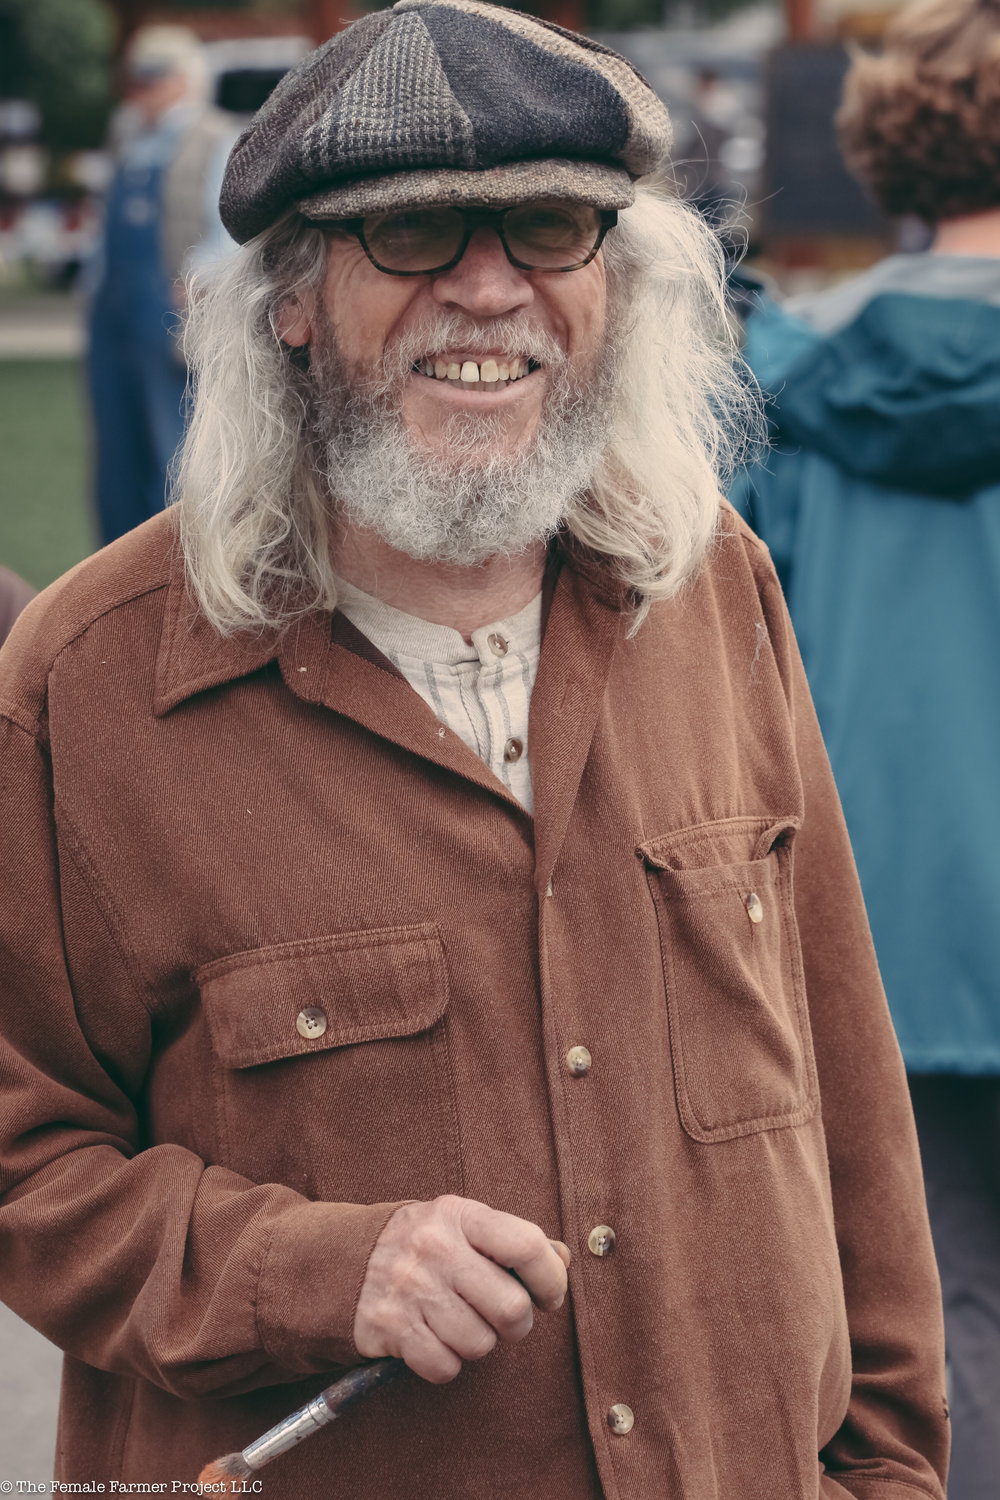 the artist, Joe Lee Davidson